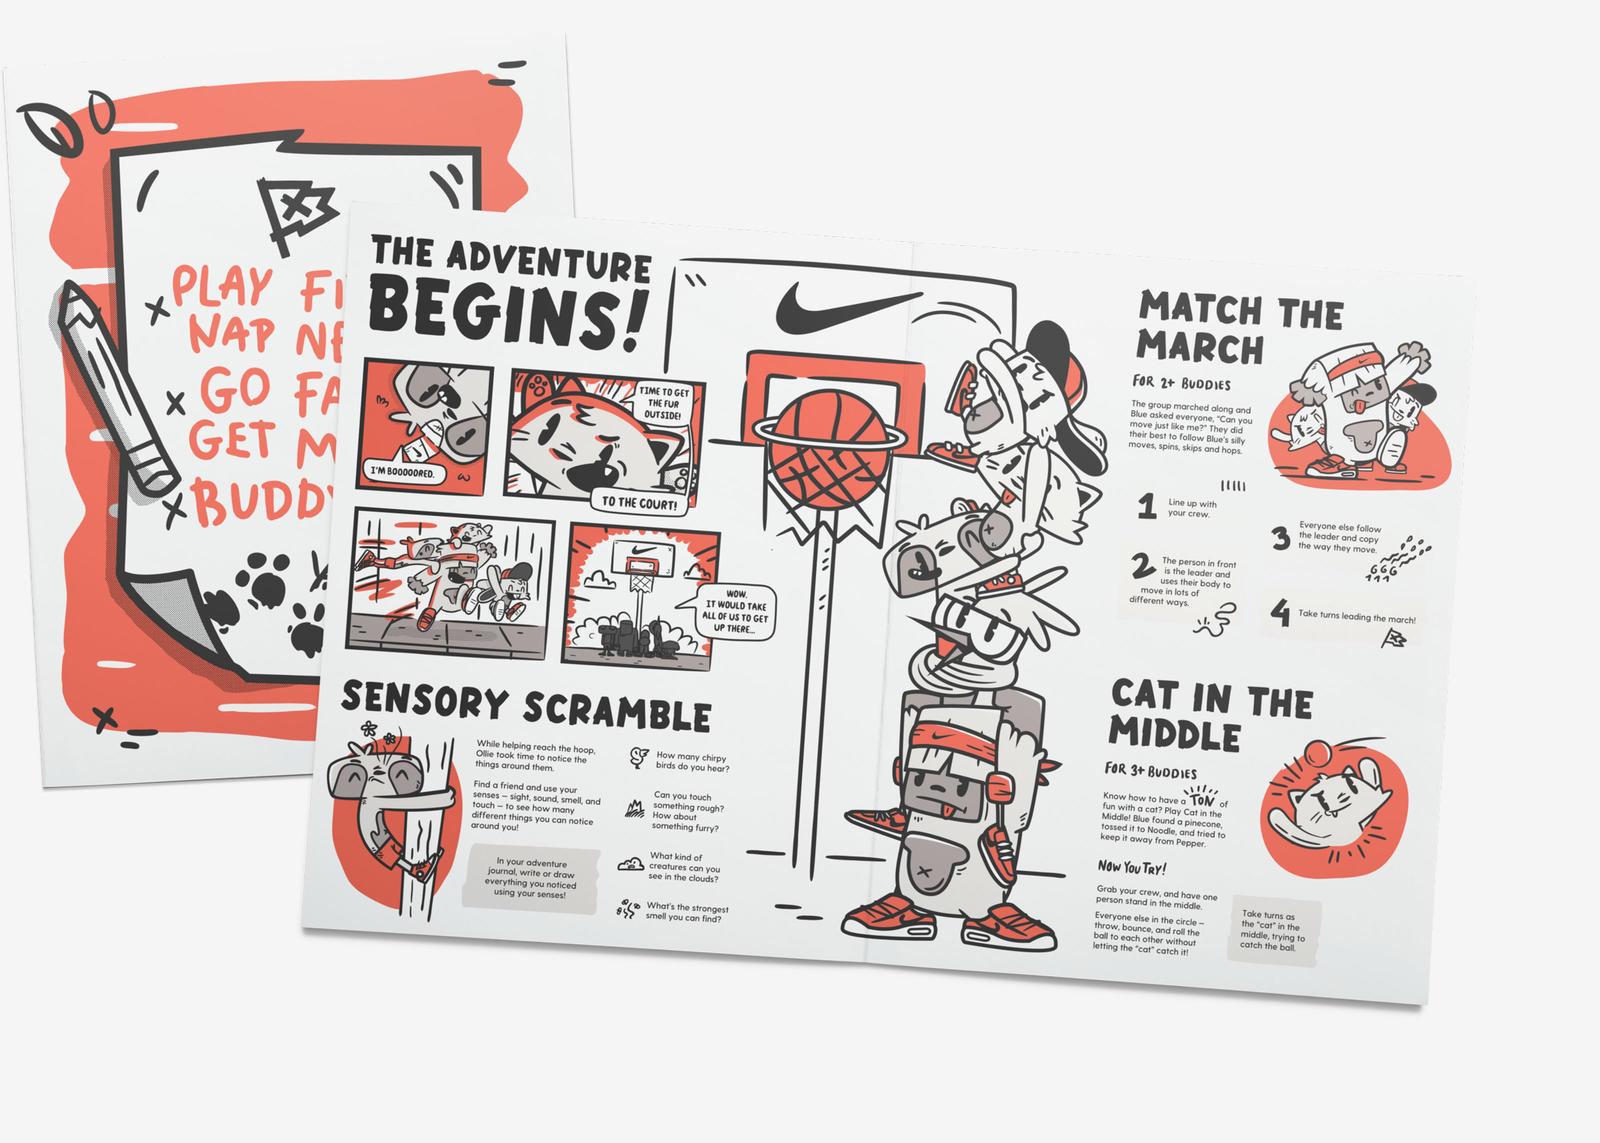 Nike launches a subscription service for kids' shoes, Nike